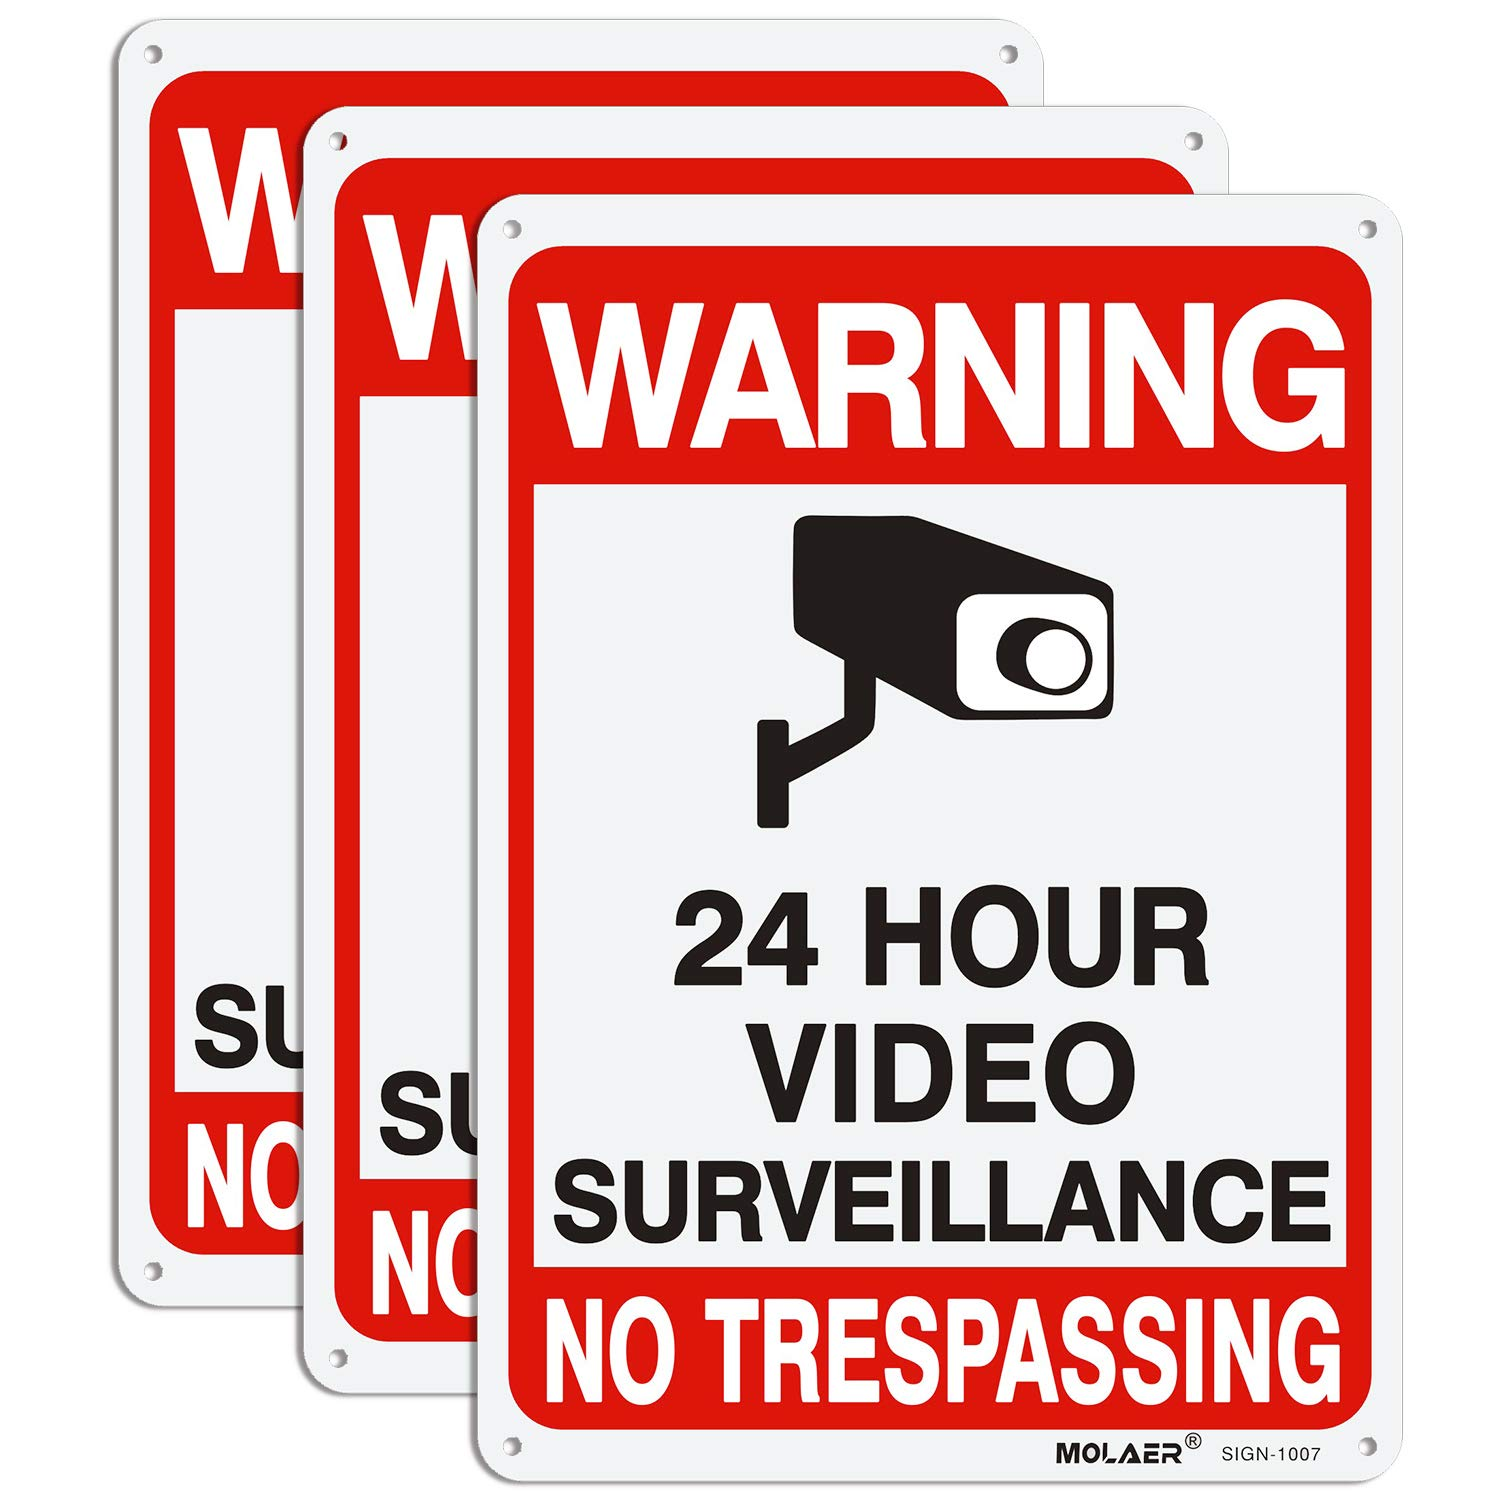 """Video Surveillance Sign, MOLAER 3-Pack No Trespassing Signs, 10"""" x 7"""" UV Printed Waterproof Reflective 40 Aluminum Material, for Outdoor Security Camera Warning"""